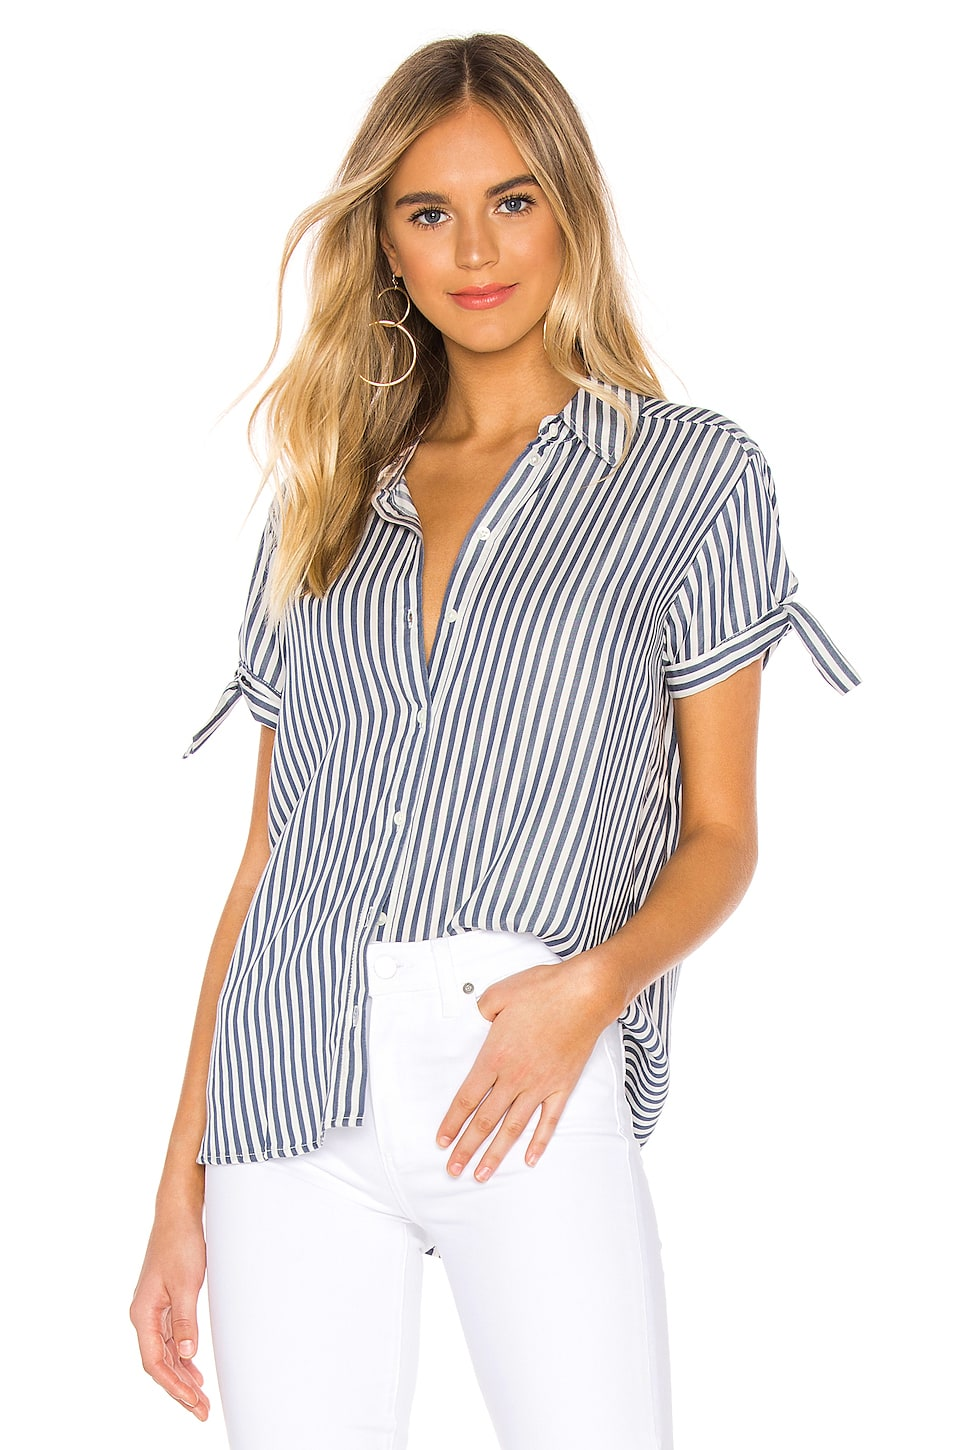 PAIGE Avery Shirt in Navy & White